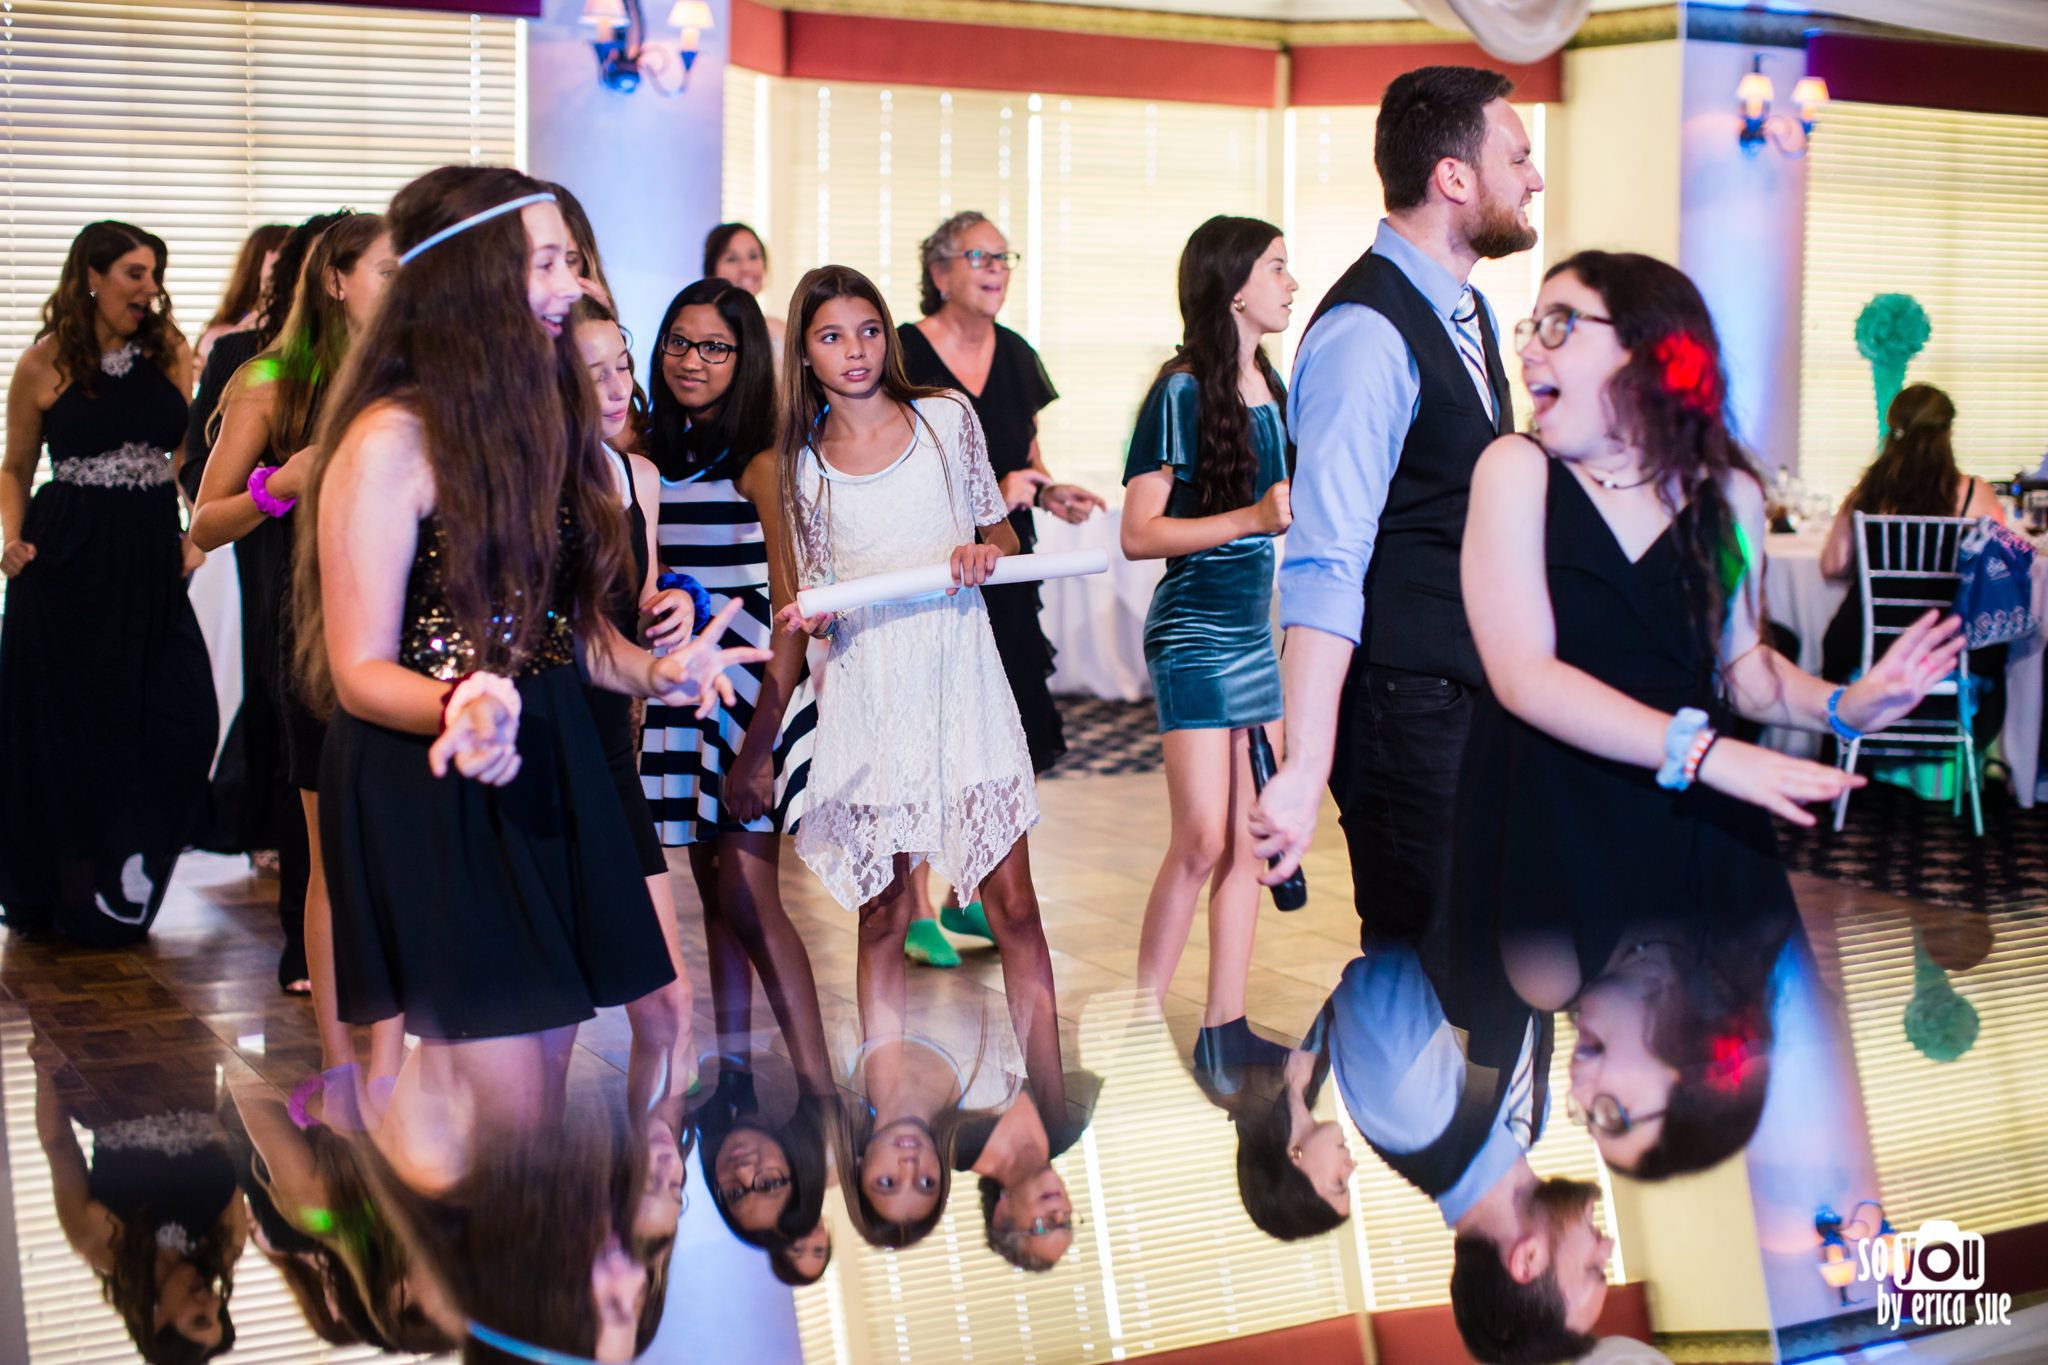 so-you-by-erica-sue-bnai-mitzvah-photographer-delray-beach-golf-club-fl-3703.jpg